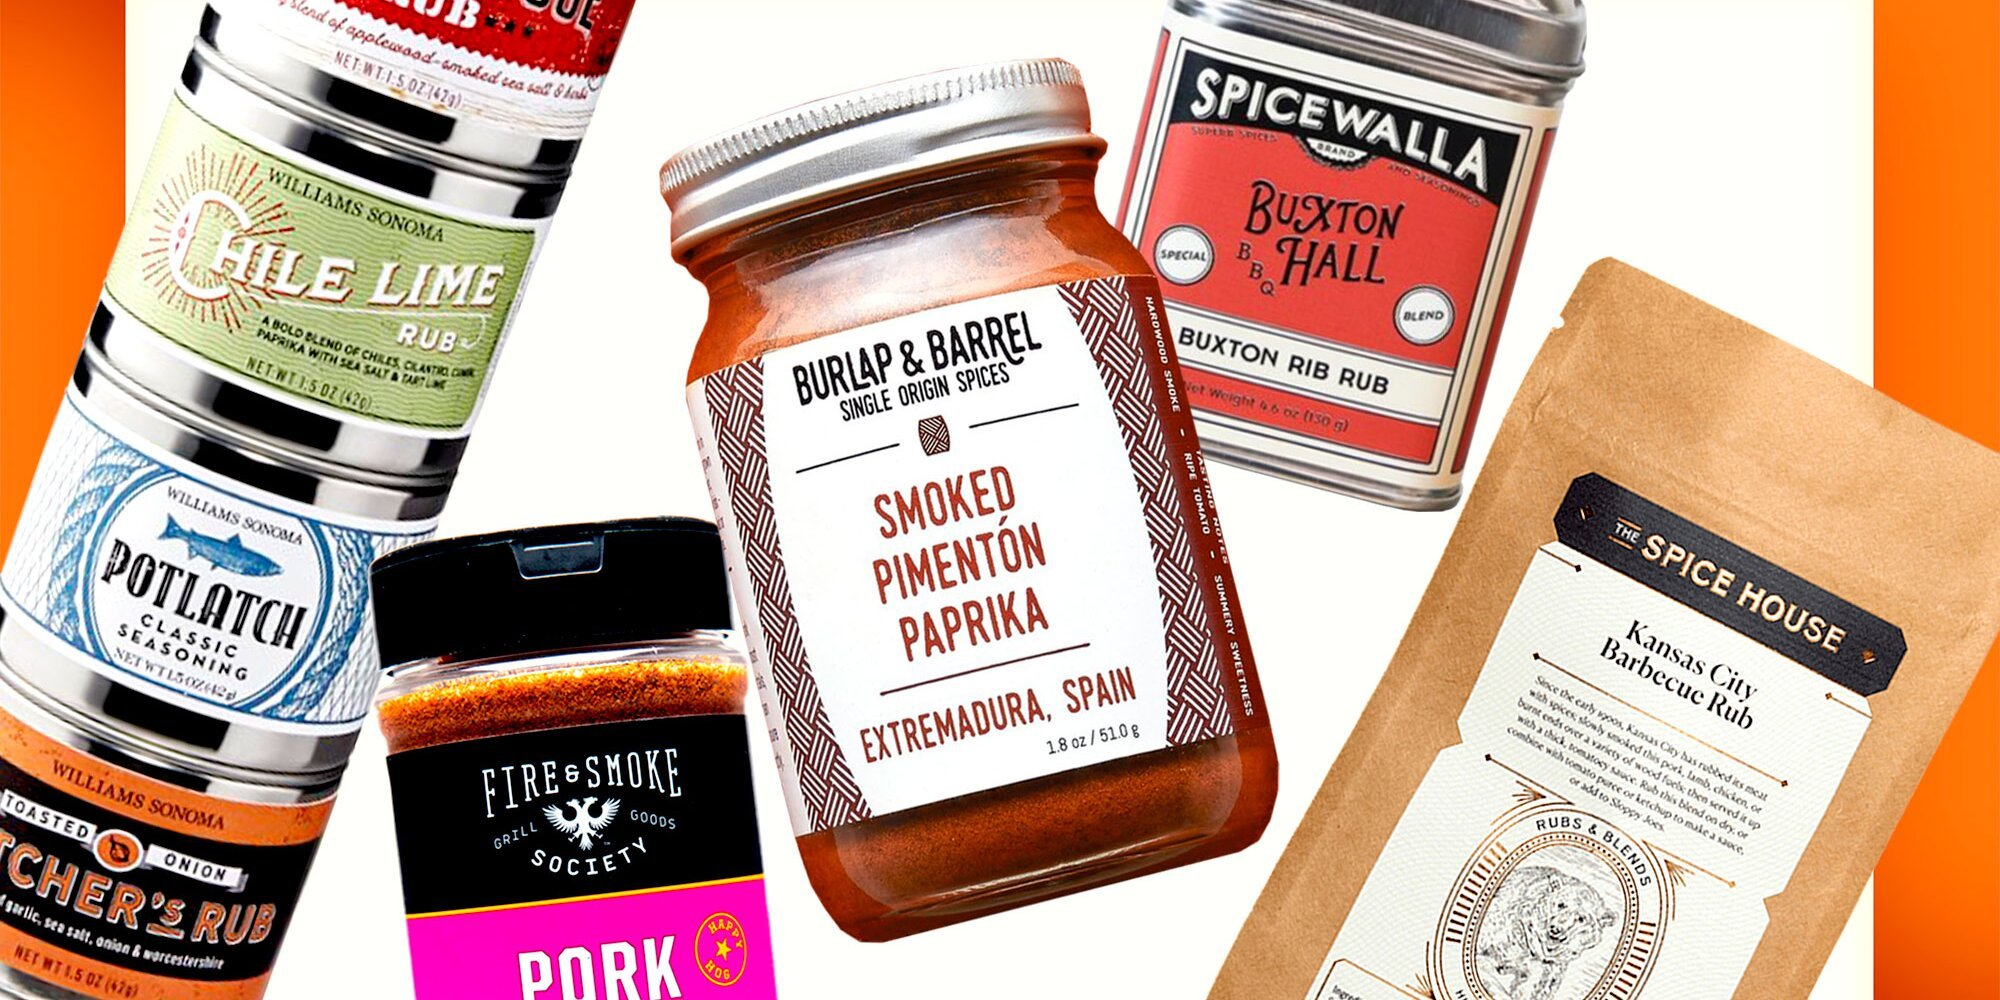 Where to Buy Spices and Rubs to Make Incredible Barbecue at Home